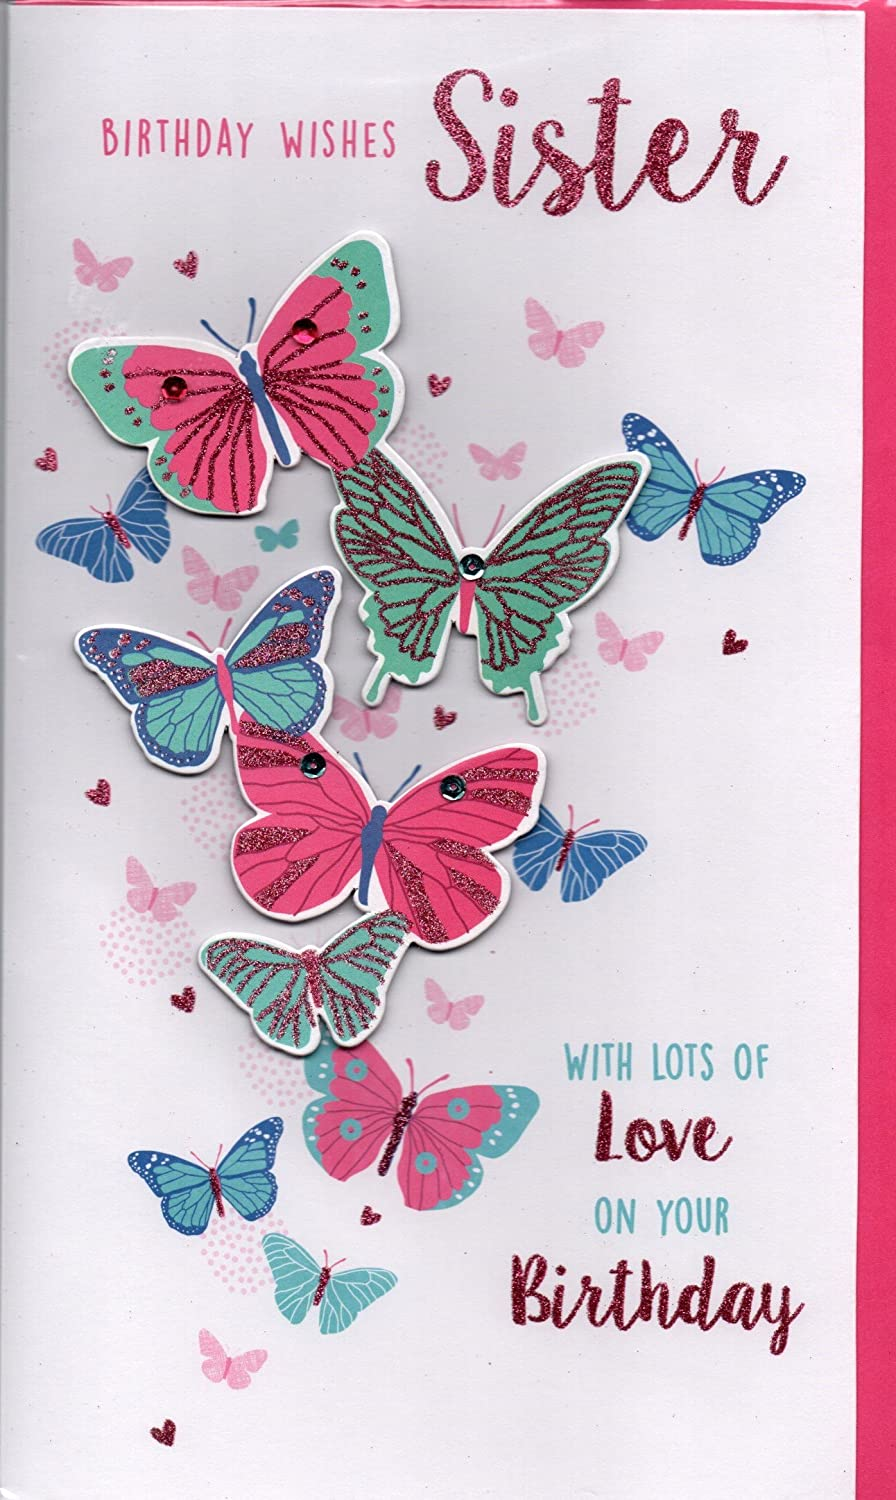 Sister Birthday Card Birthday Wishes Sister With Lots Of Love At Alexander S Amazon Co Uk Garden Outdoors